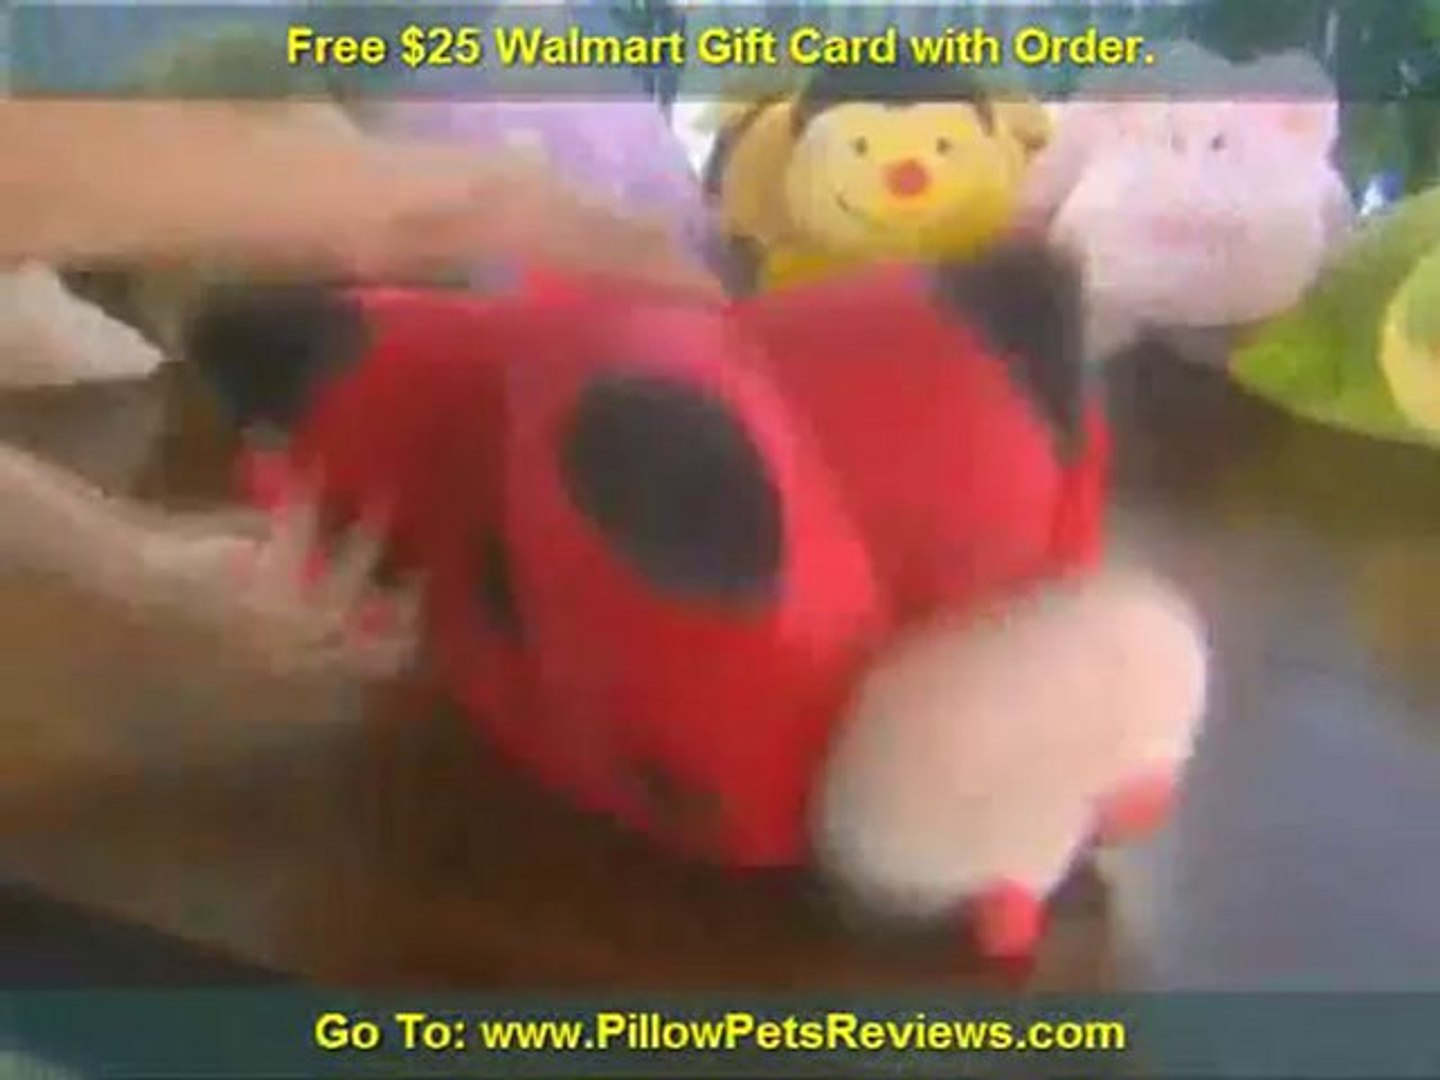 My Pillow Pets Reviews | Free $25 Pillow Pets™ Gift Card